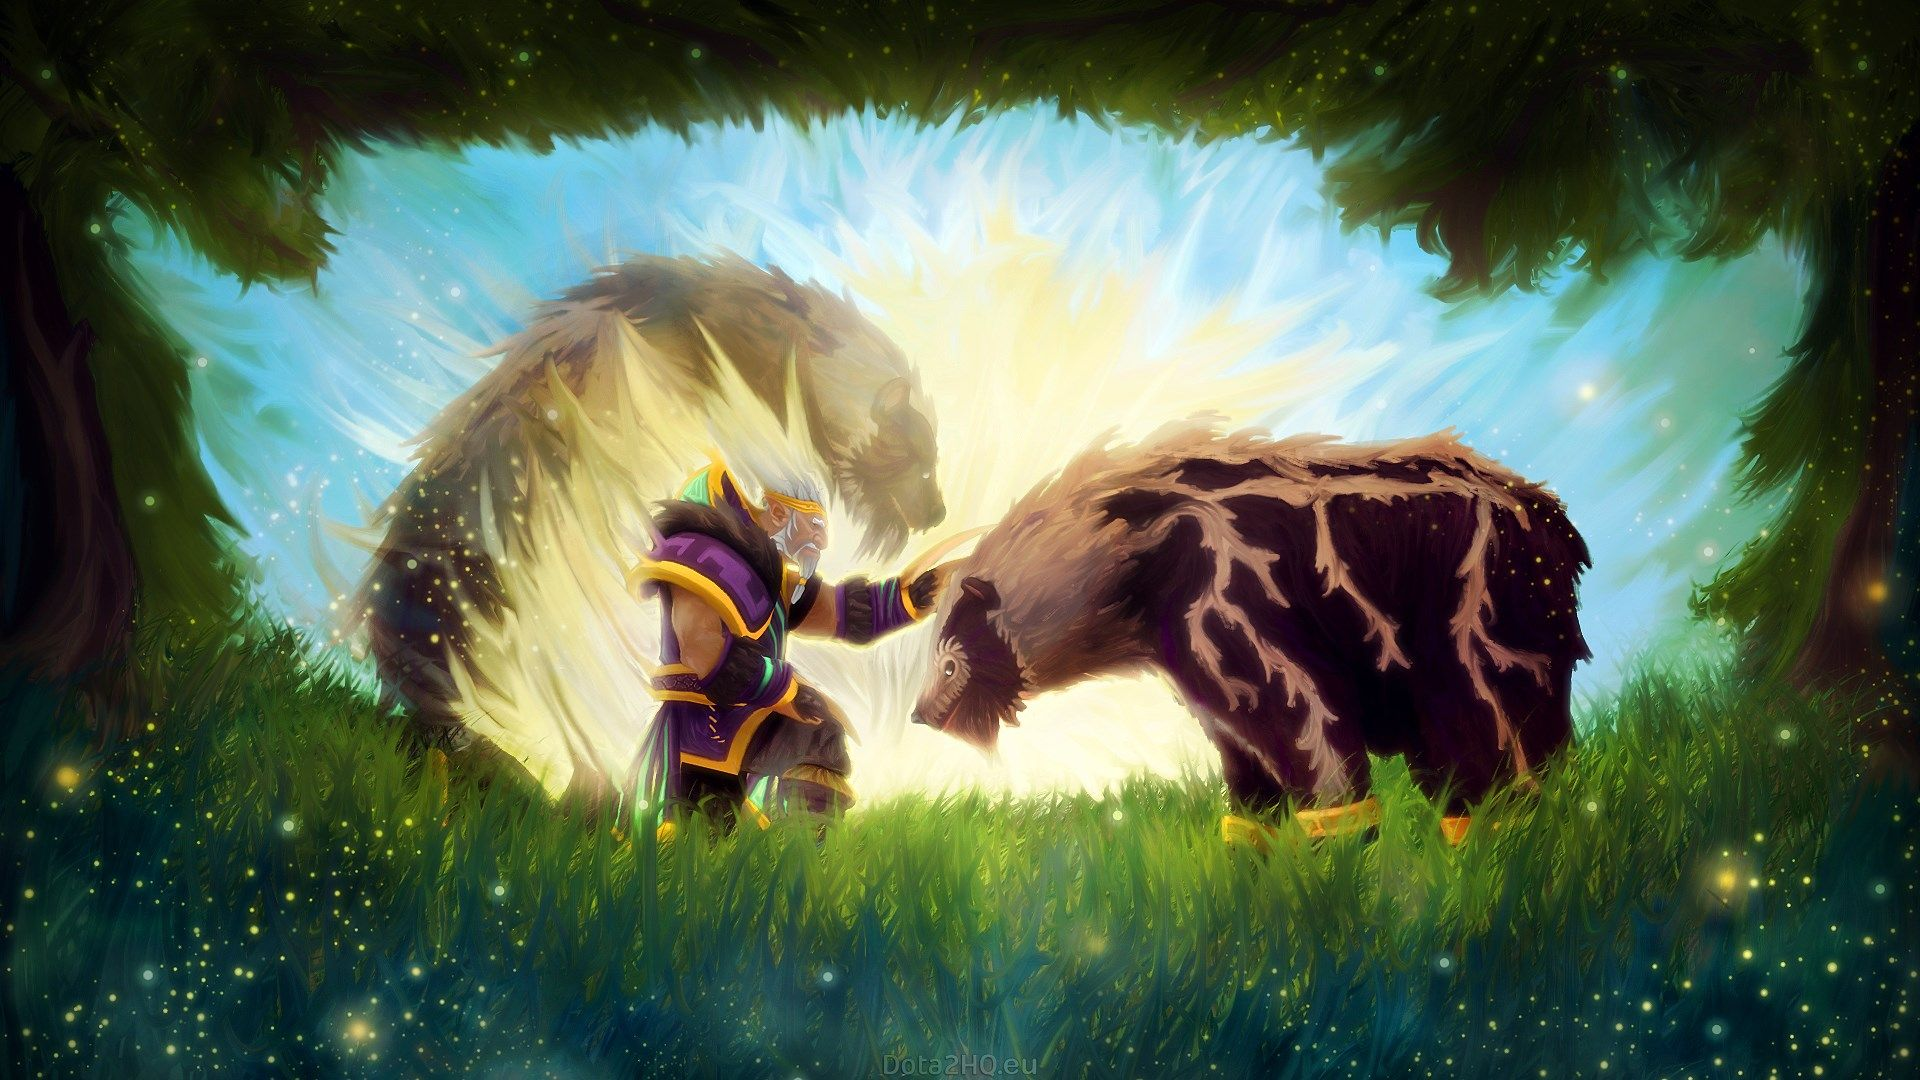 1920x1080 Lone Druid Dota 2 Wallpaper Hd Dota 2 Lone Druid Dota 2 Wallpapers Hd